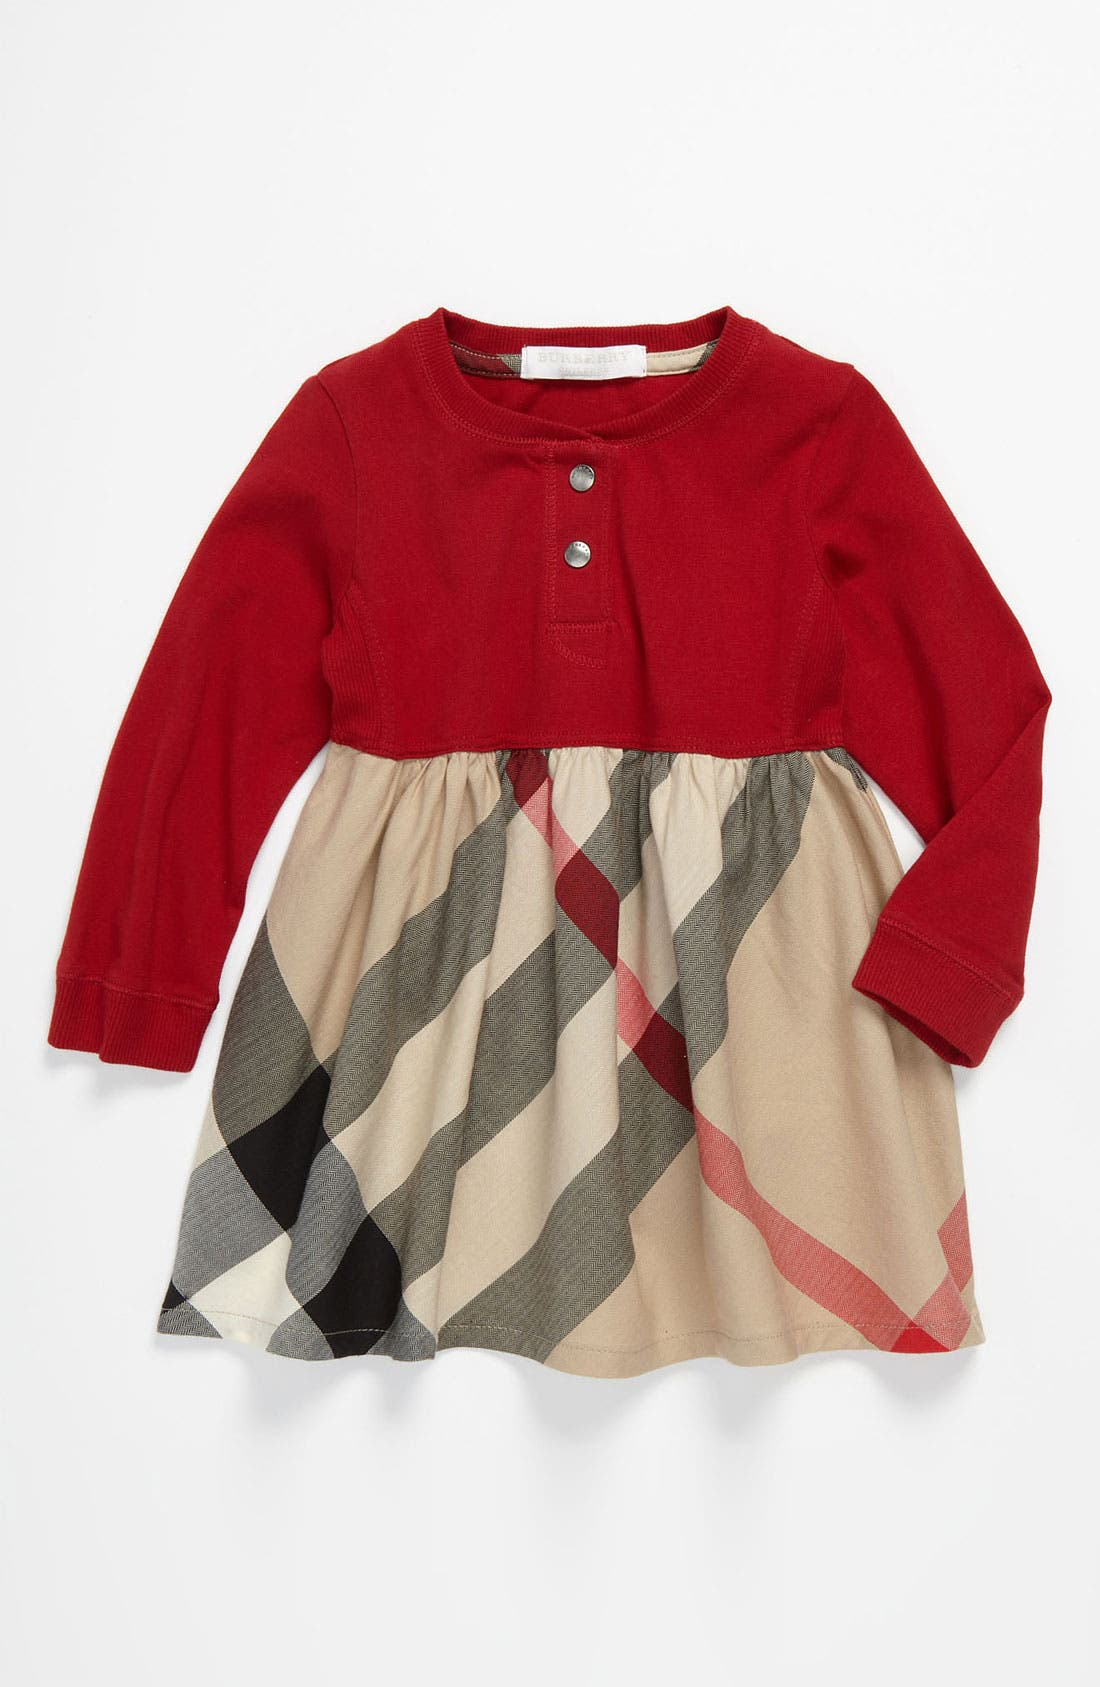 Alternate Image 1 Selected - Burberry Knit & Woven Dress (Toddler)